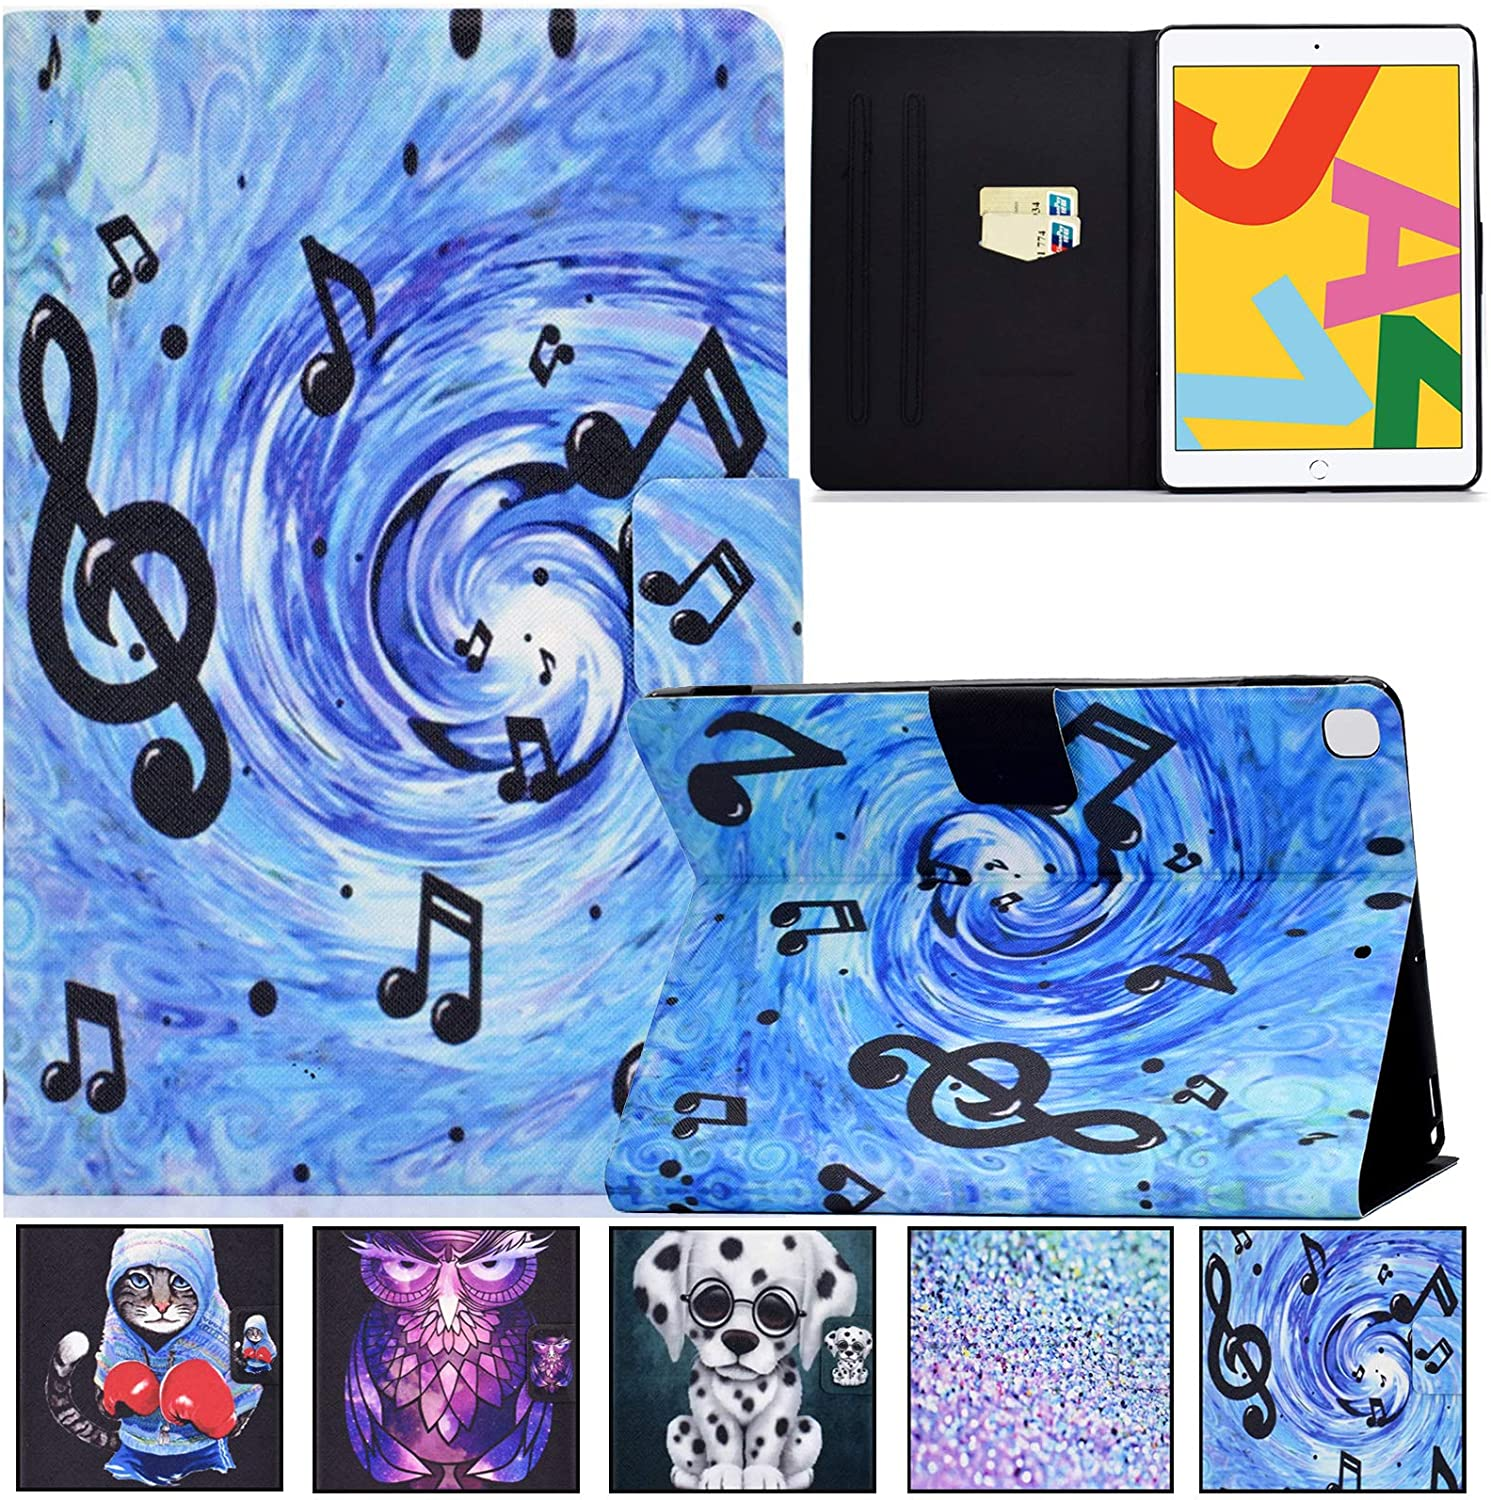 Artyond Case for 10.2 Inch 2019, New iPad 7th Generation 10.2